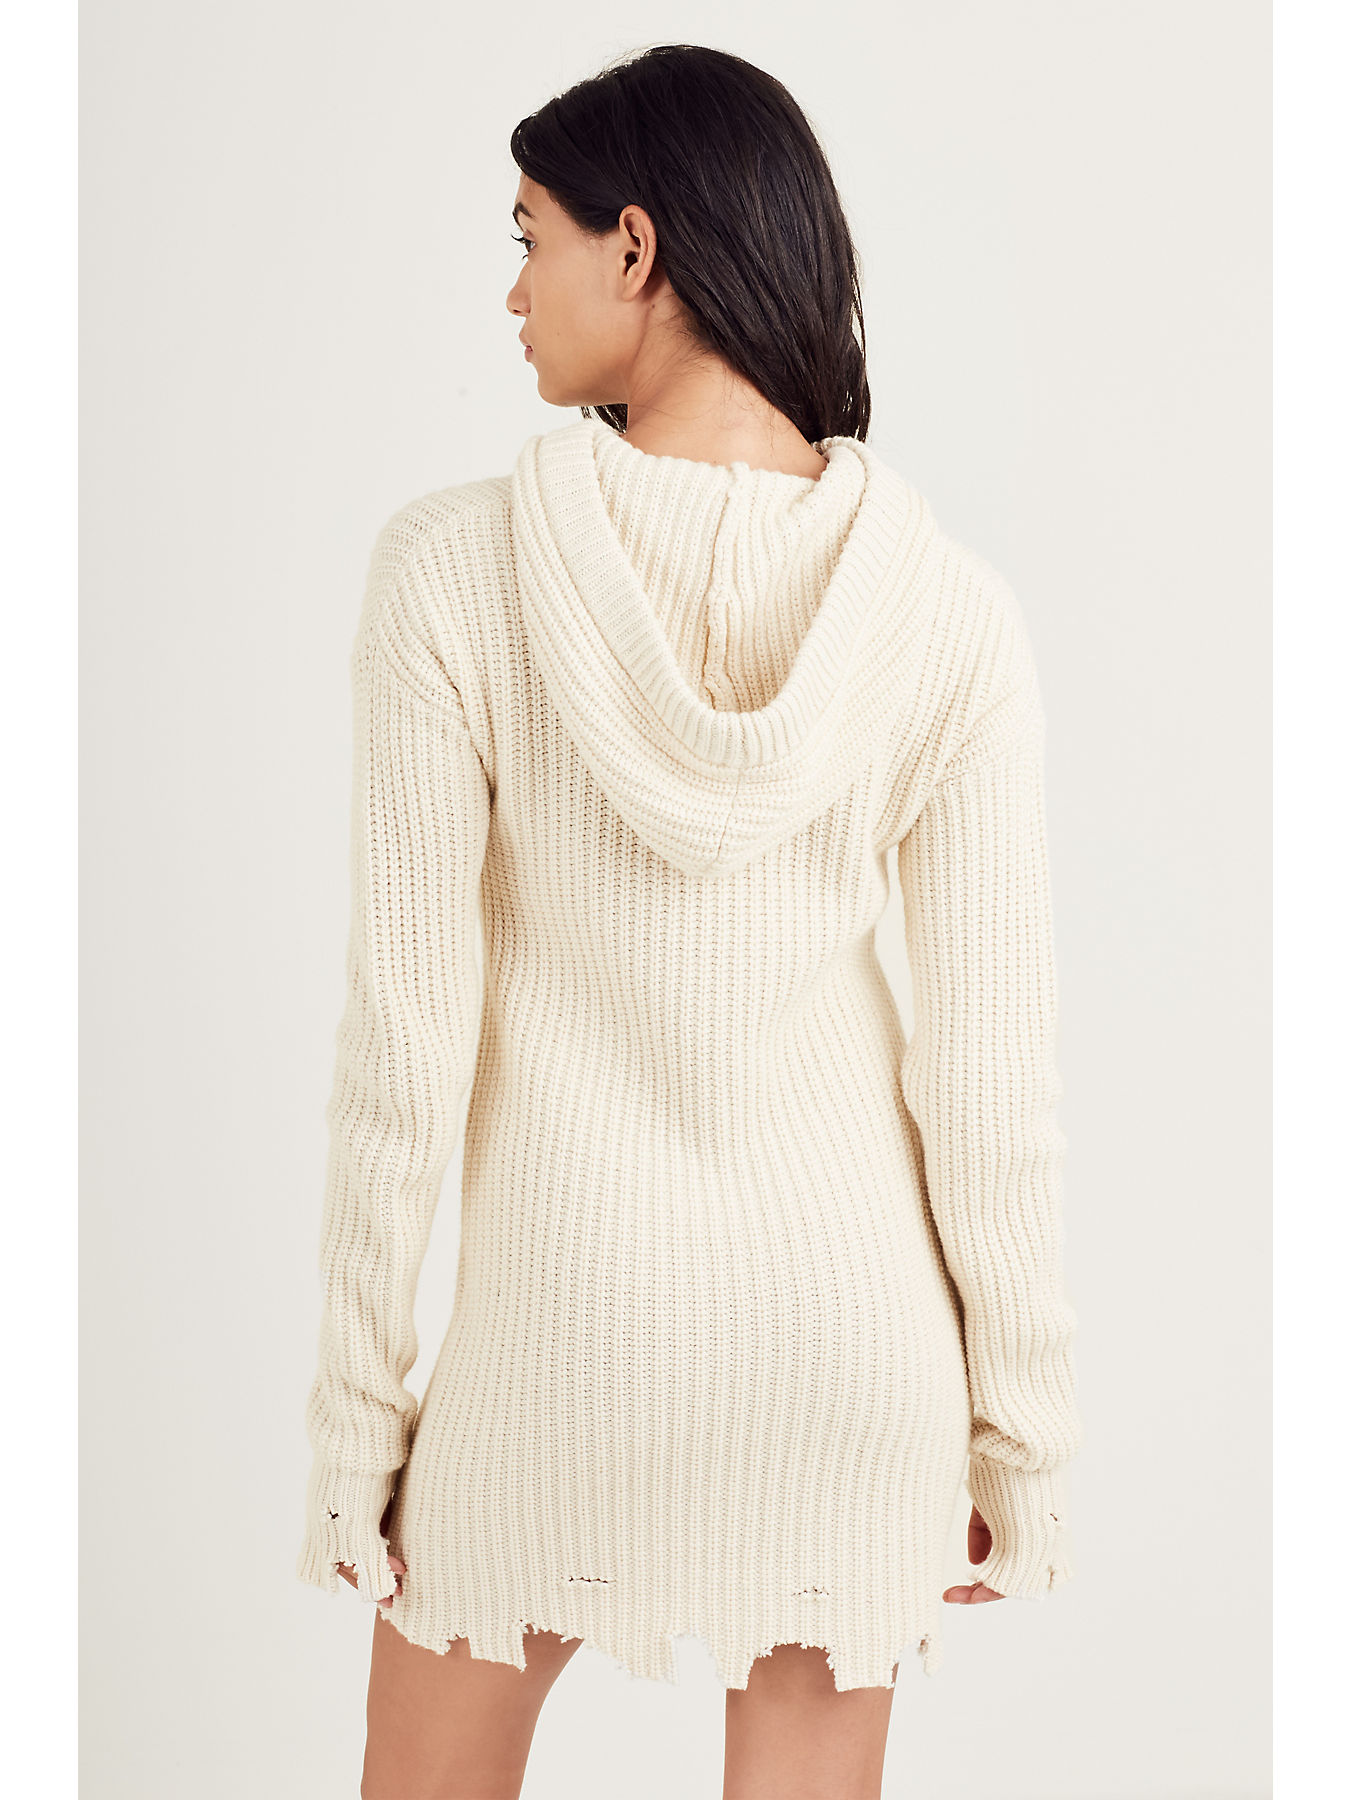 ea93def2086 WOMENS DISTRESSED RIBBED SWEATER DRESS  WOMENS DISTRESSED RIBBED SWEATER  DRESS ...